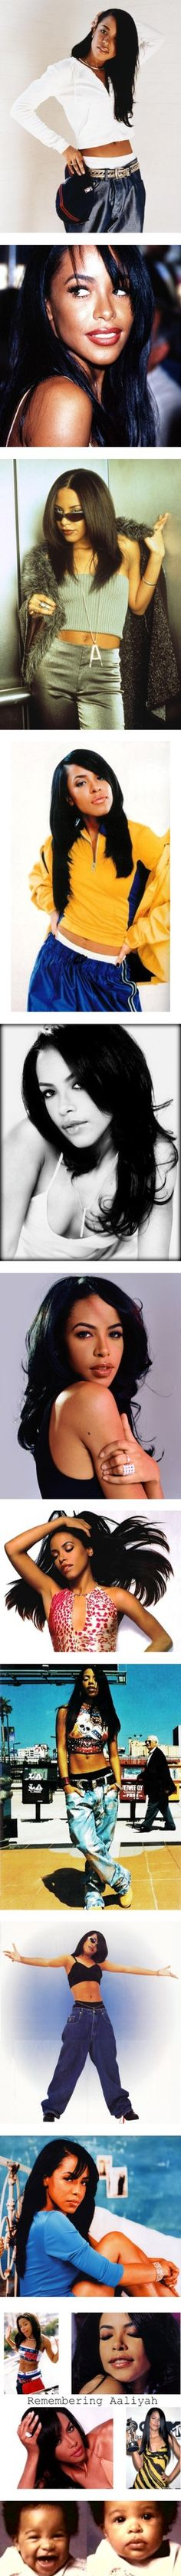 """Aaliyah Dana Haughton"" by rio-anon ❤ liked on Polyvore@Felicia G Fletcher"